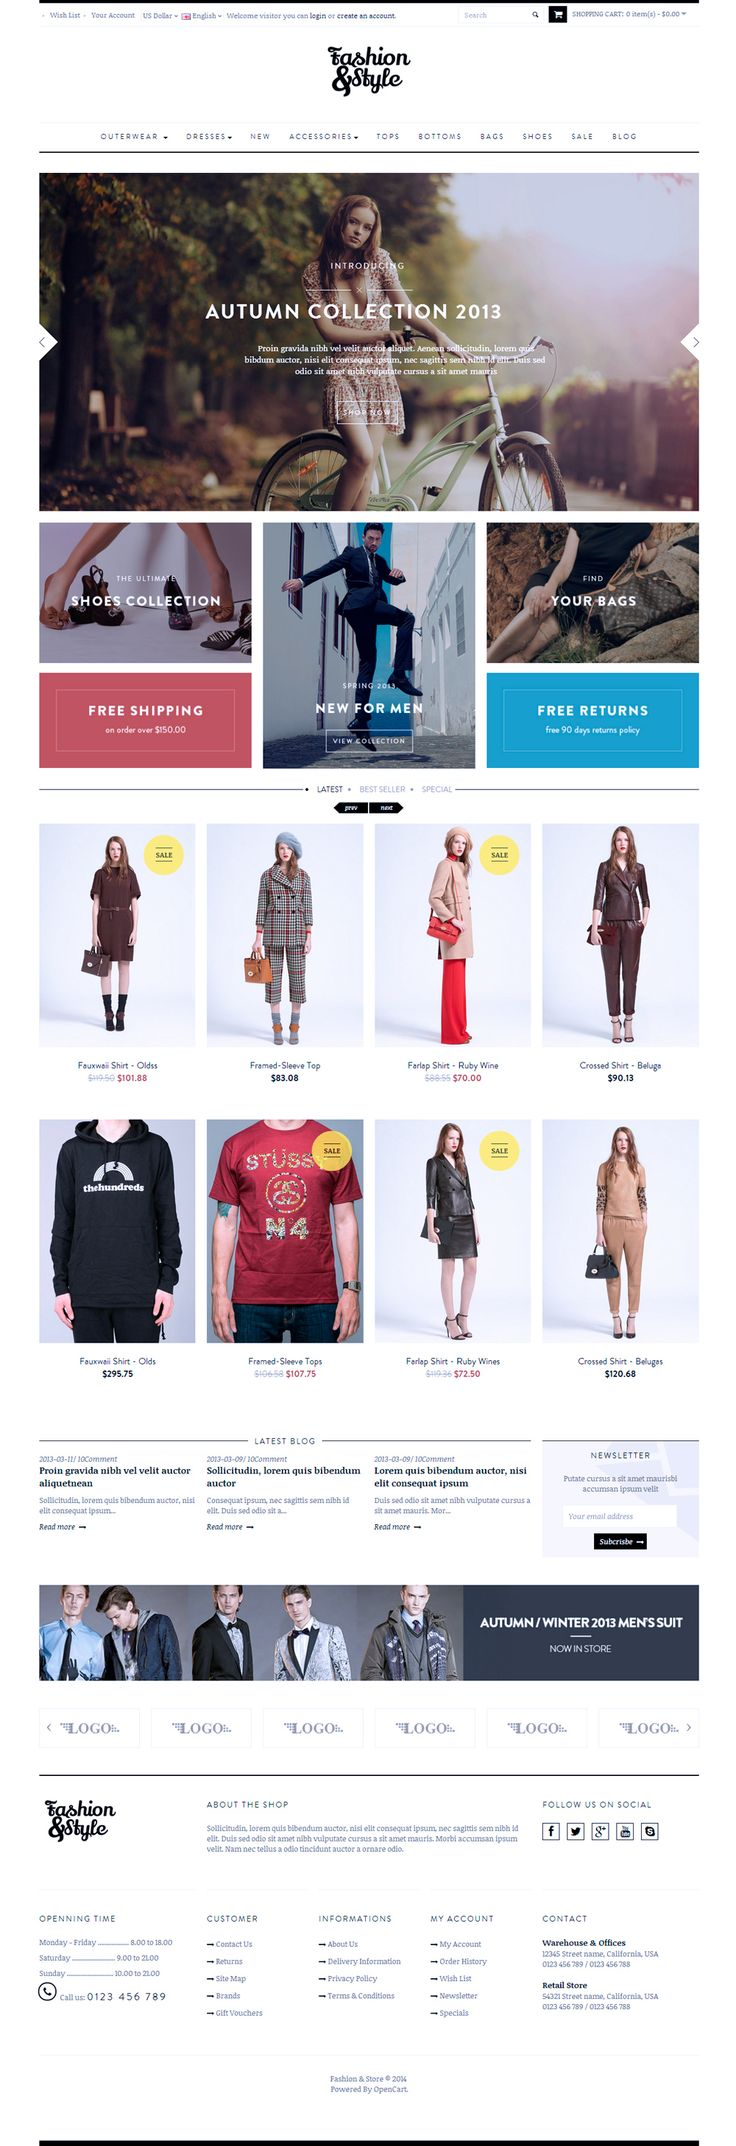 This Pin was discovered by Dejan Mauzer. Discover (and save!) your own Pins on Pinterest. | See more about cleanses and fashion.